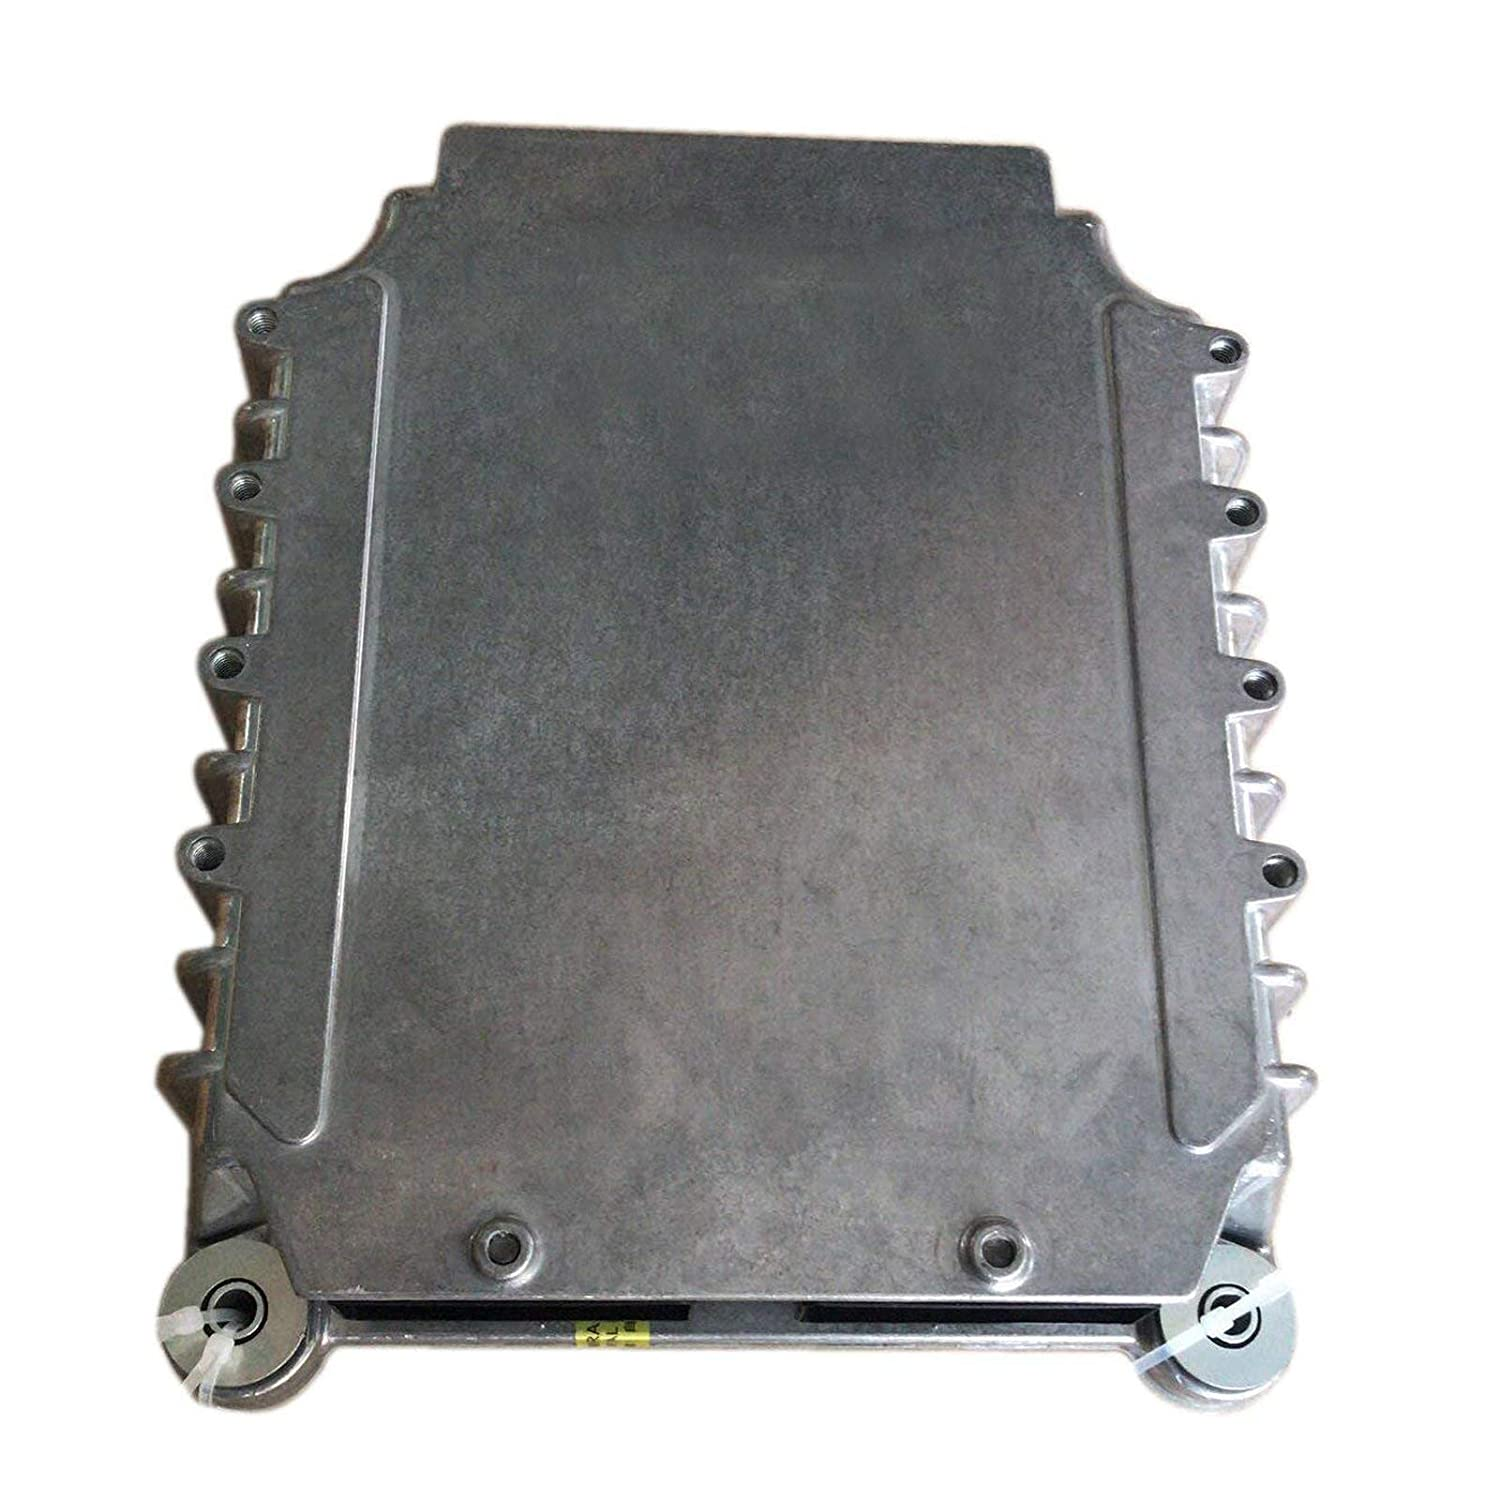 Holdwell Control Unit Controller ECU 20577132 for Volvo B7L B7R A25D A30D EC360B EC330B G700B L150E L330E